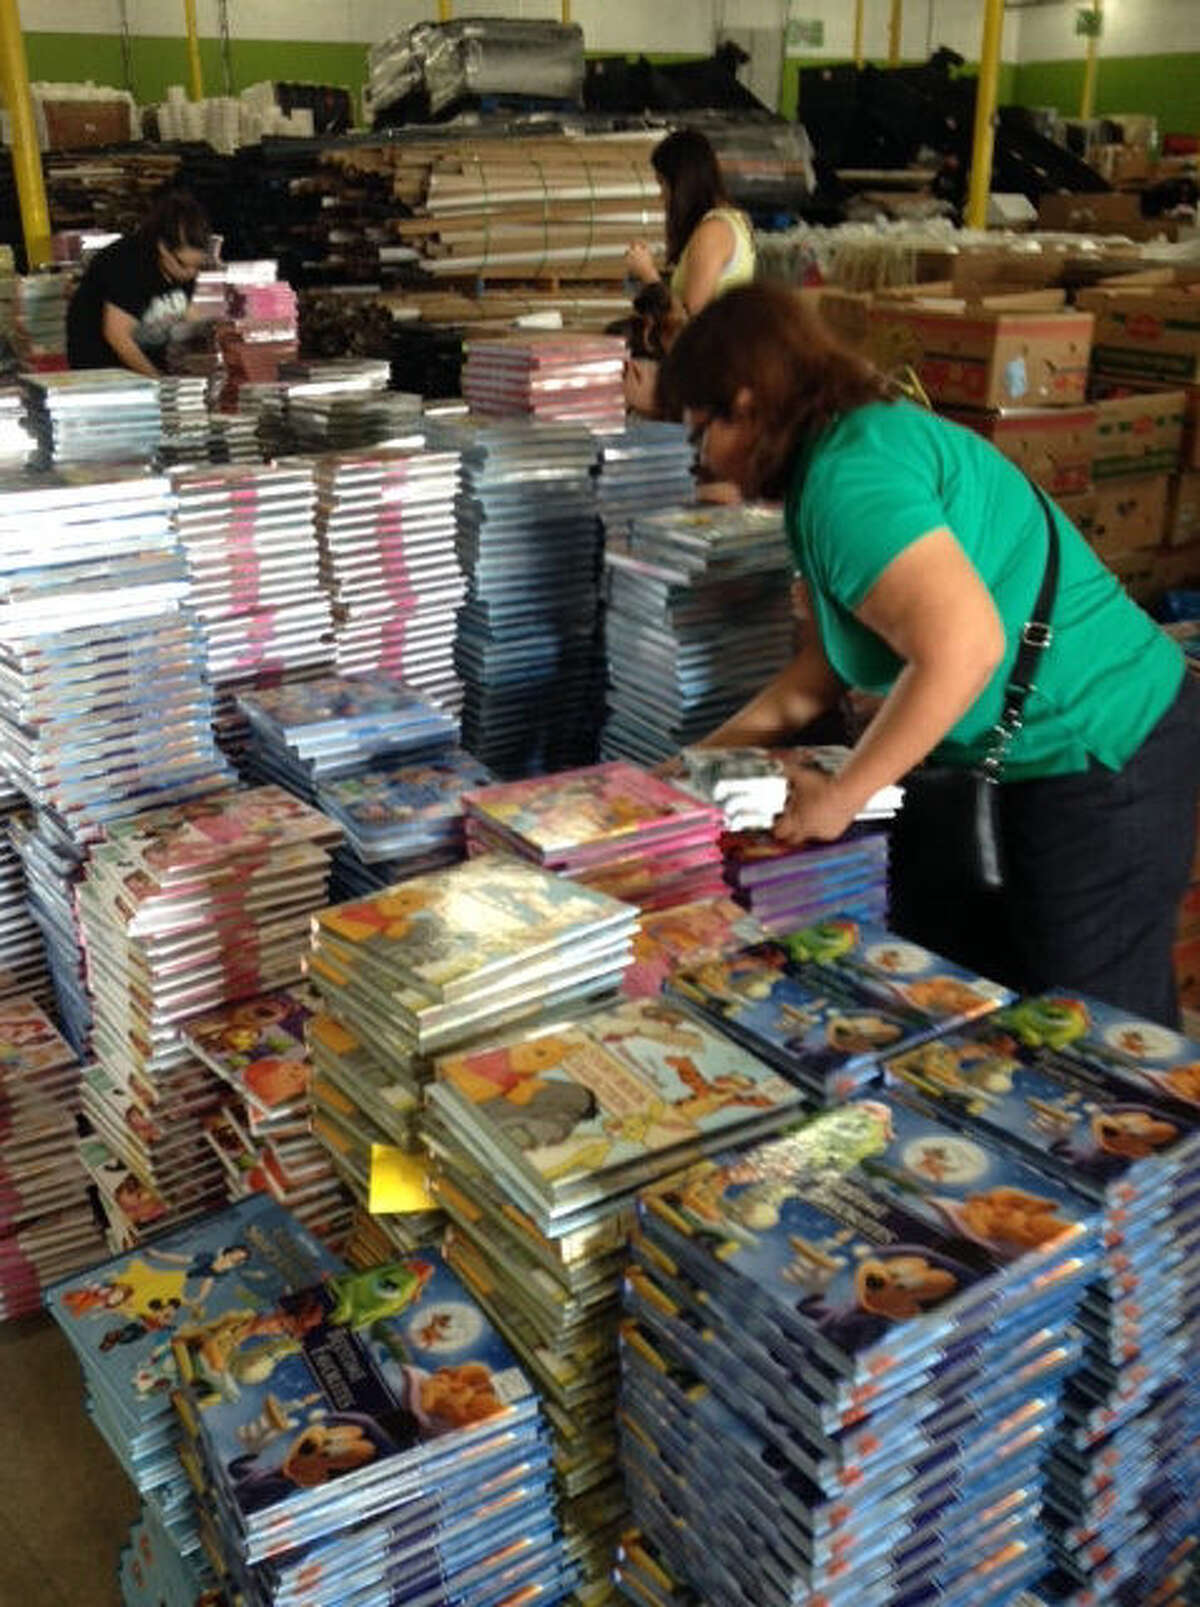 Volunteers sort some of the more than 40,000 Disney Press books that First Book-San Antonio brought to town for distribution to children from low-income homes.